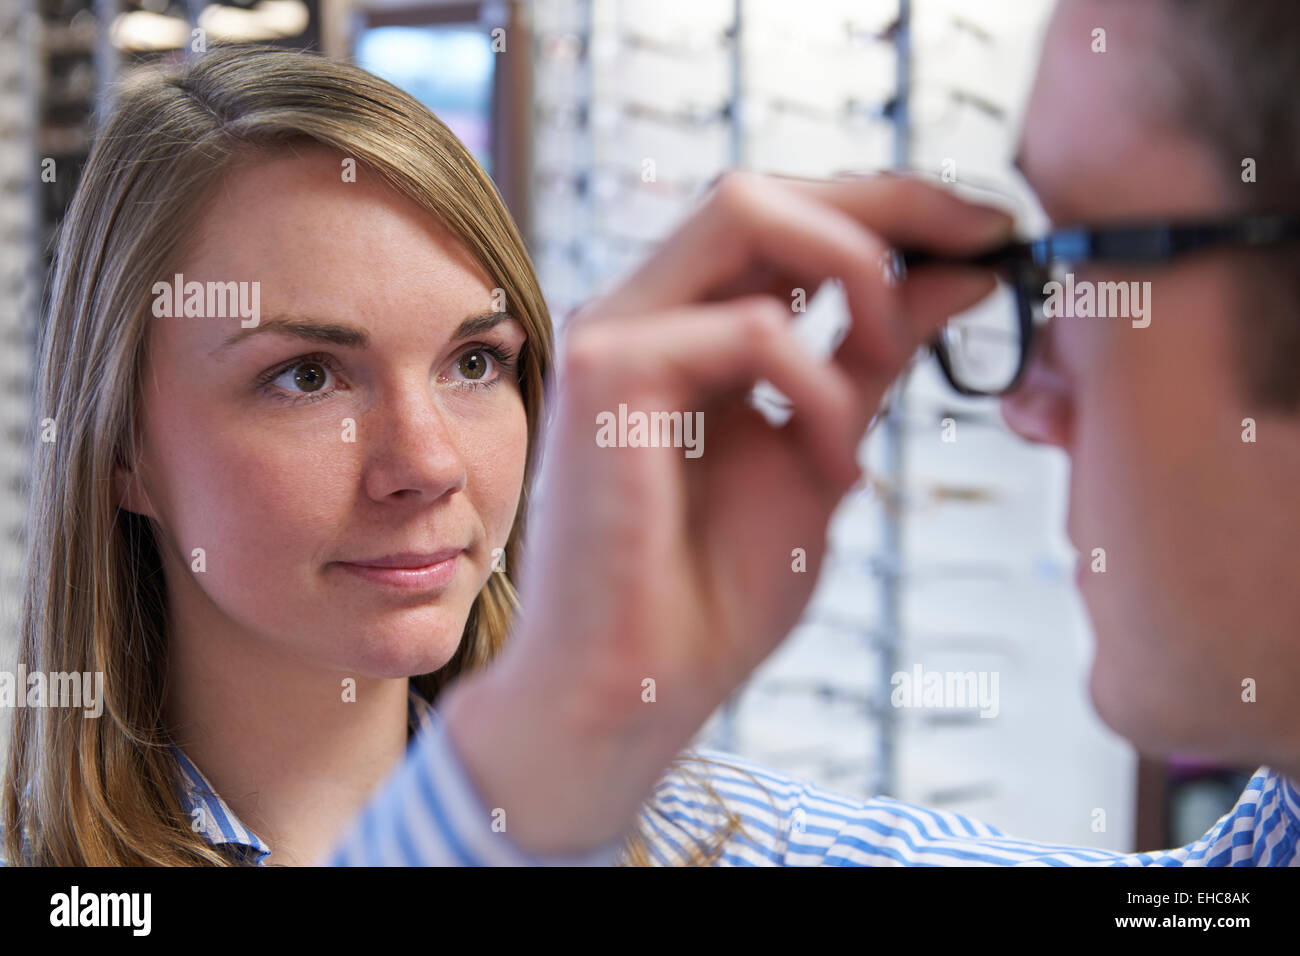 Optician Advising Client On Choice Of Glasses - Stock Image